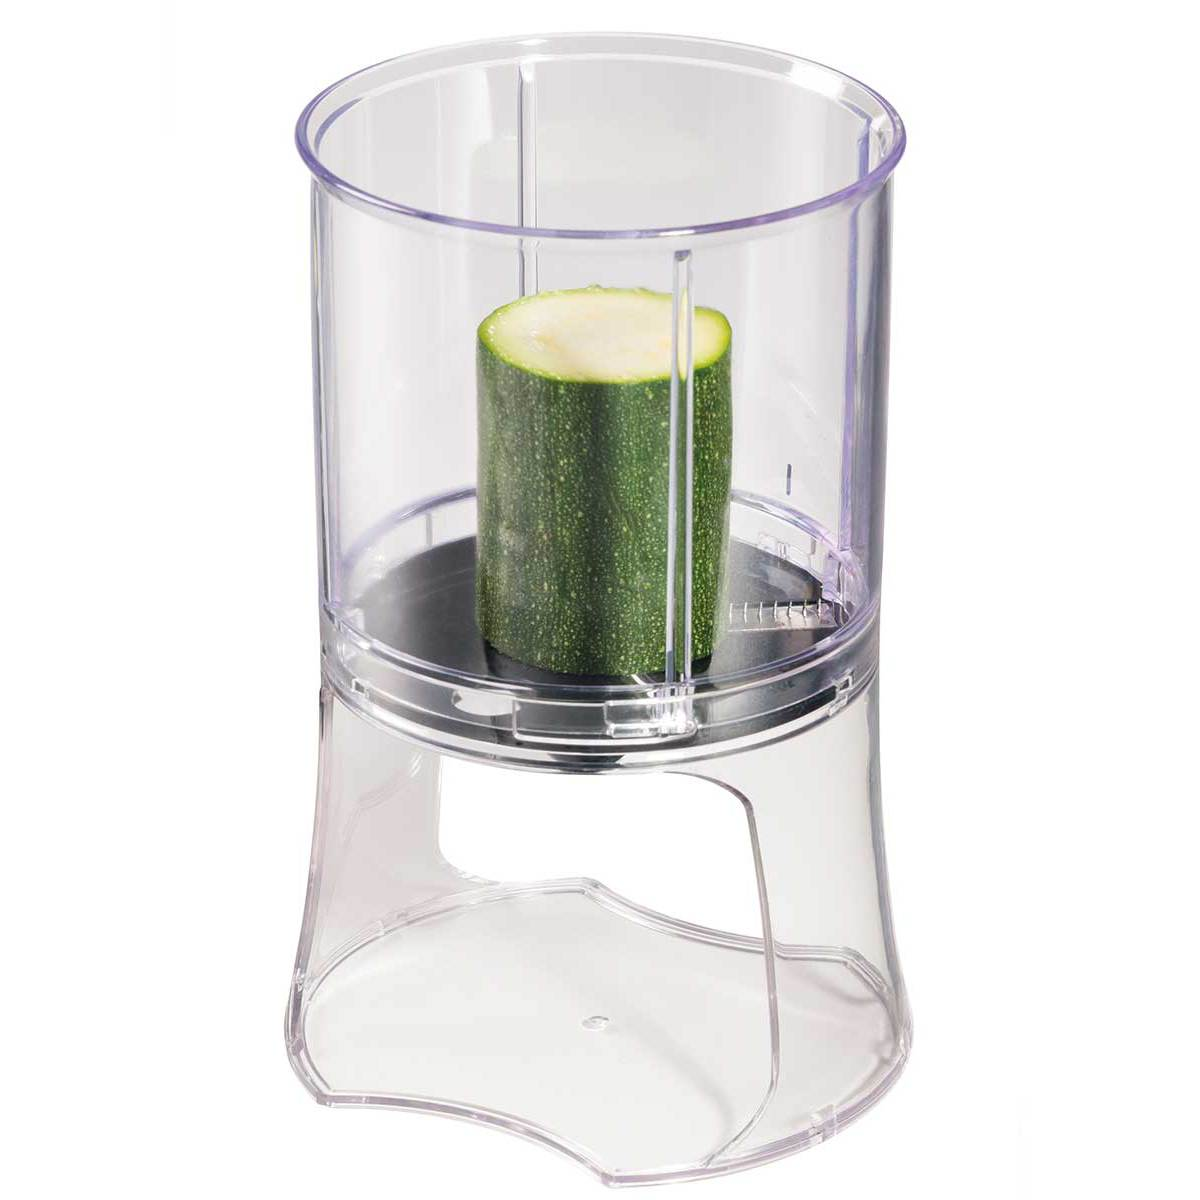 3-in-1 Electric Spiralizer (59998)